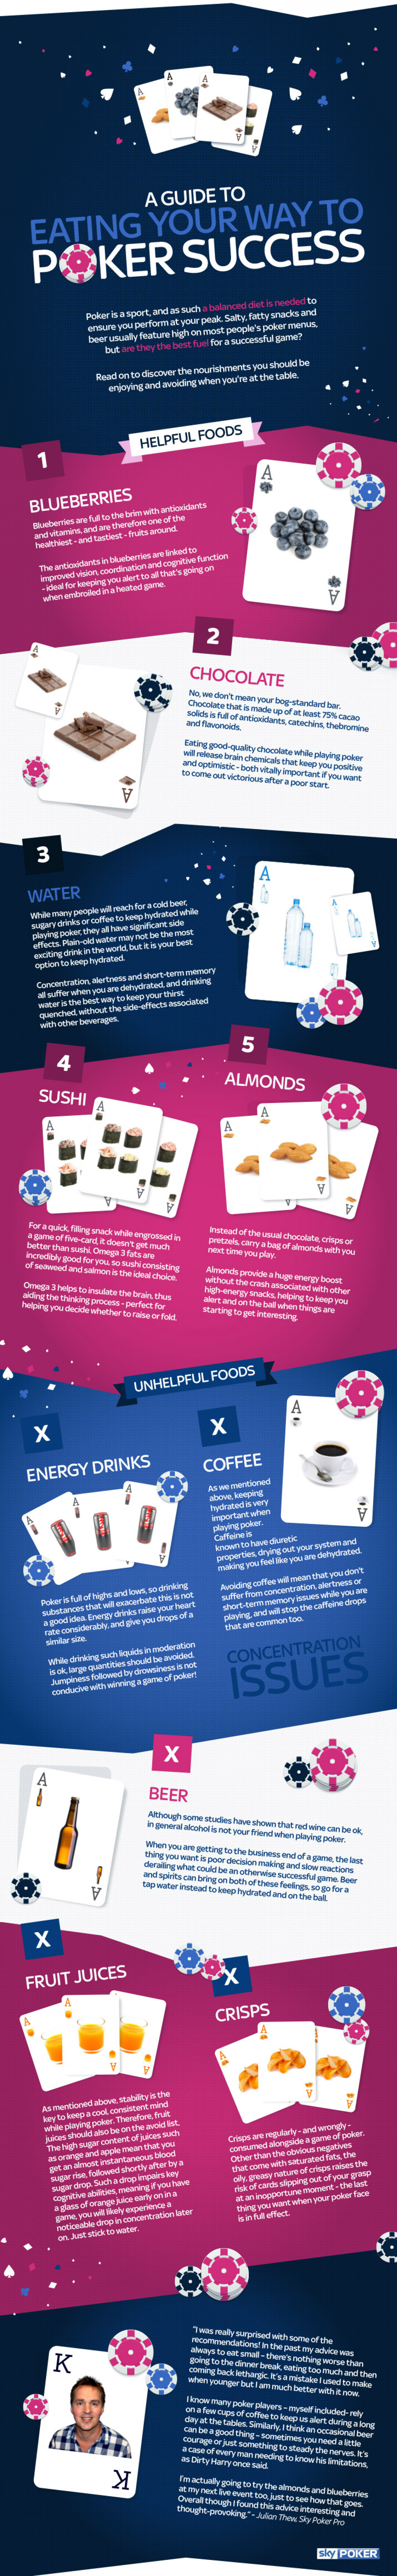 Poker & Food - What Should You Eat At The Table? Infographic